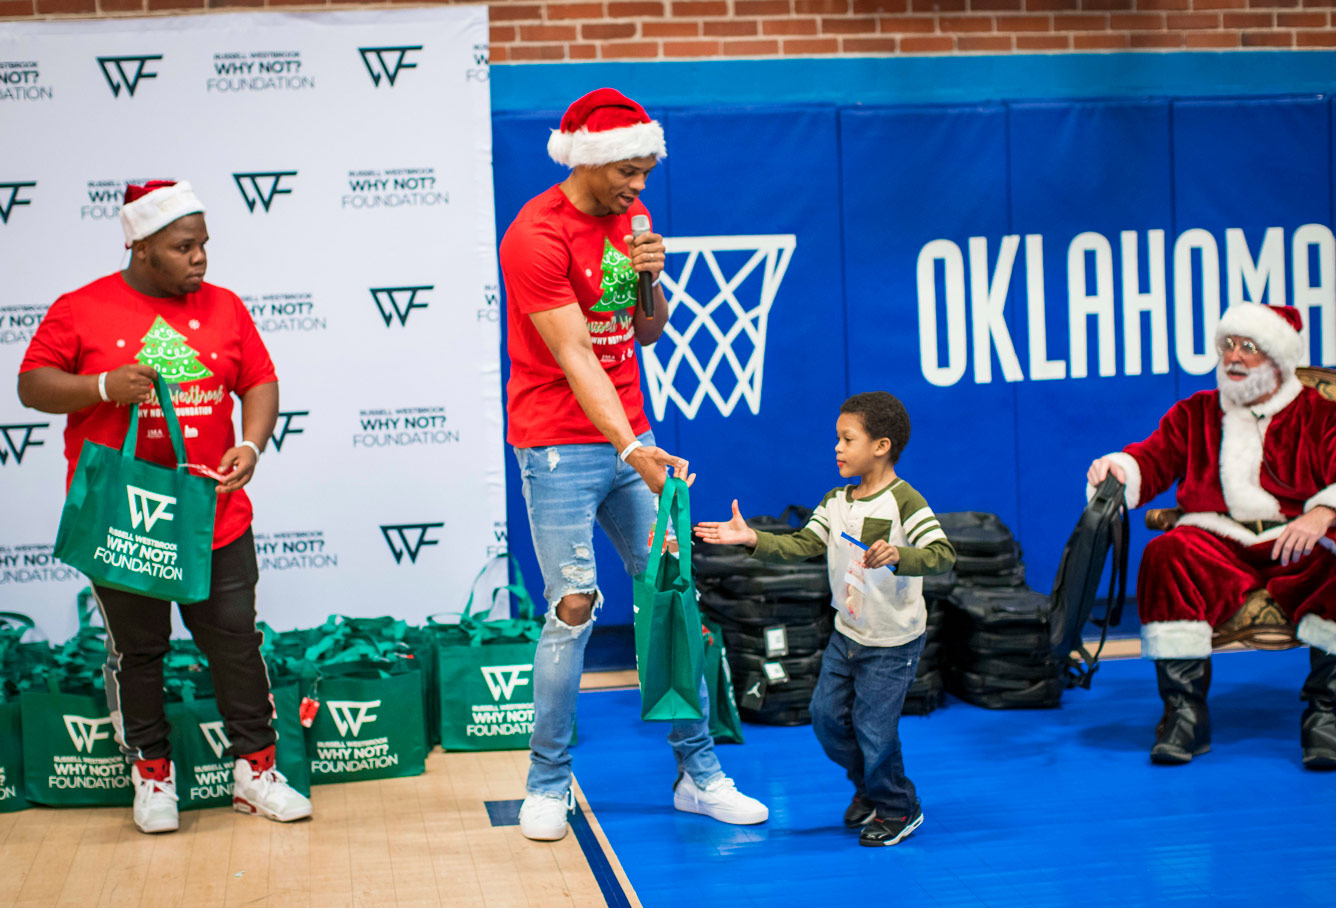 Russell Westbrook has been handing out kicks for the kids this Christmas